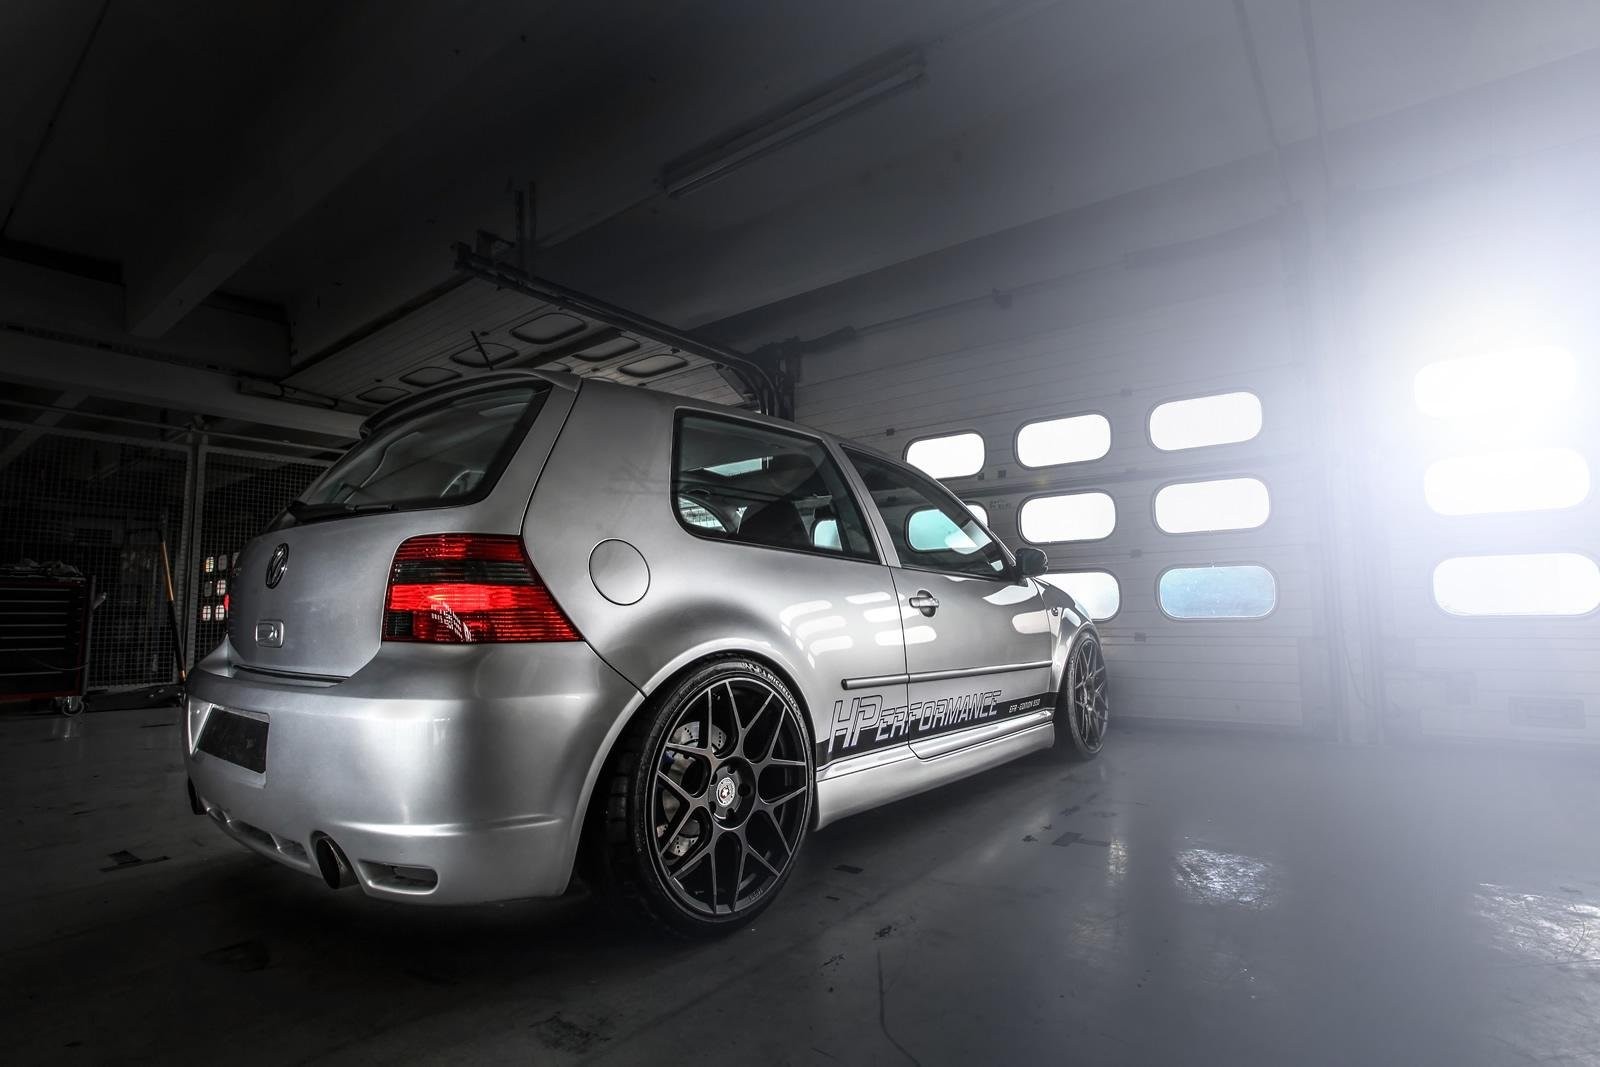 Volkswagen Golf IV R32 HPerformance Cars Modified Wallpaper